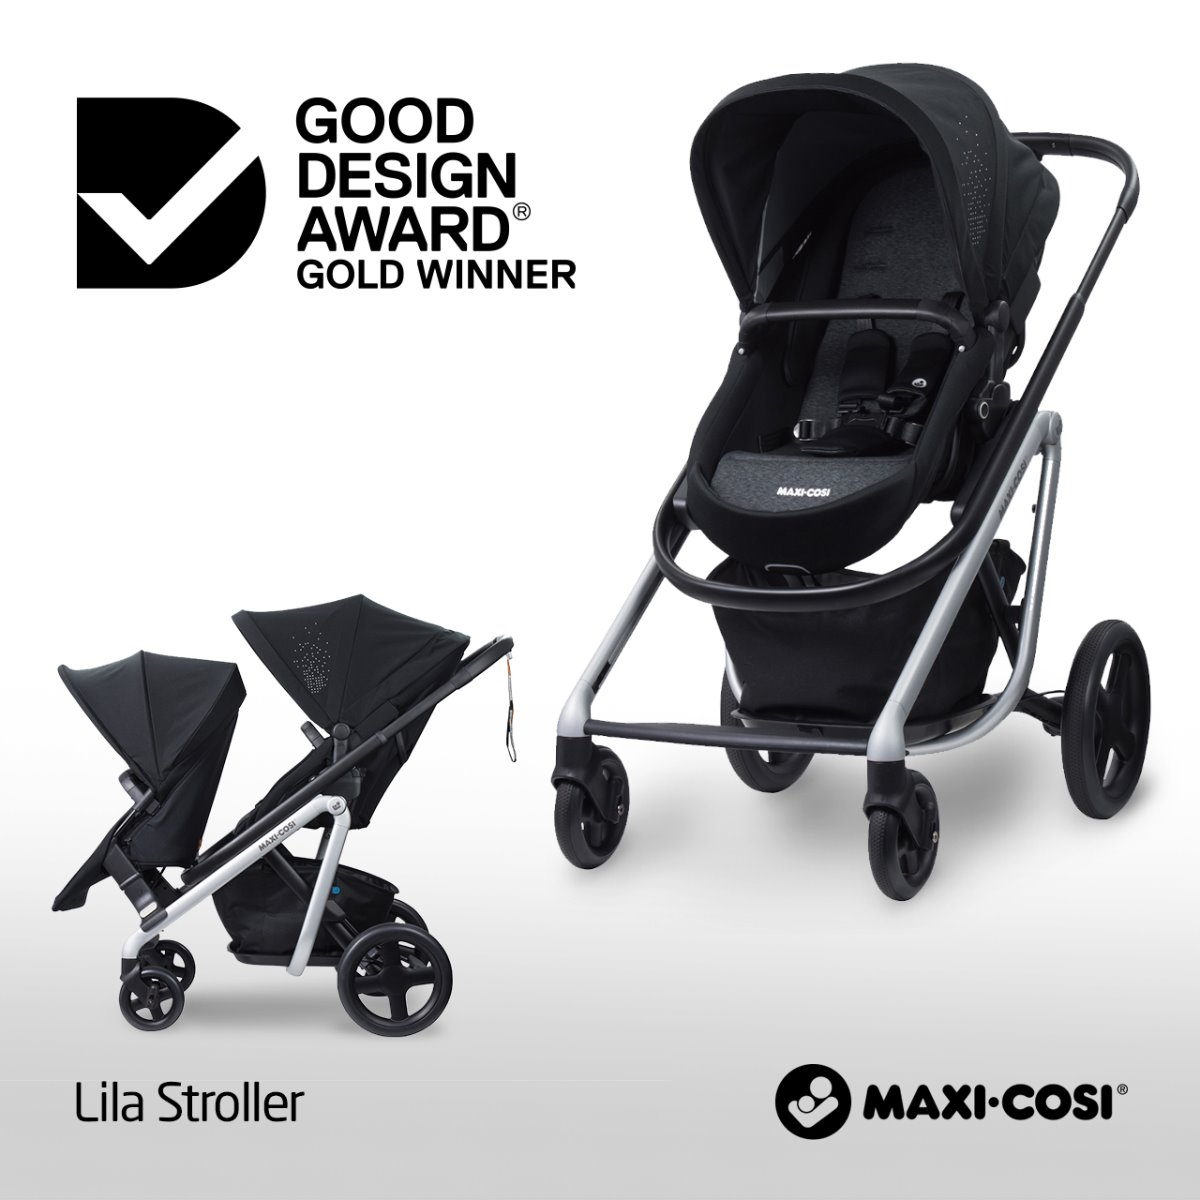 Maxi-Cosi Lila Stroller Good Design Award Gold Winner